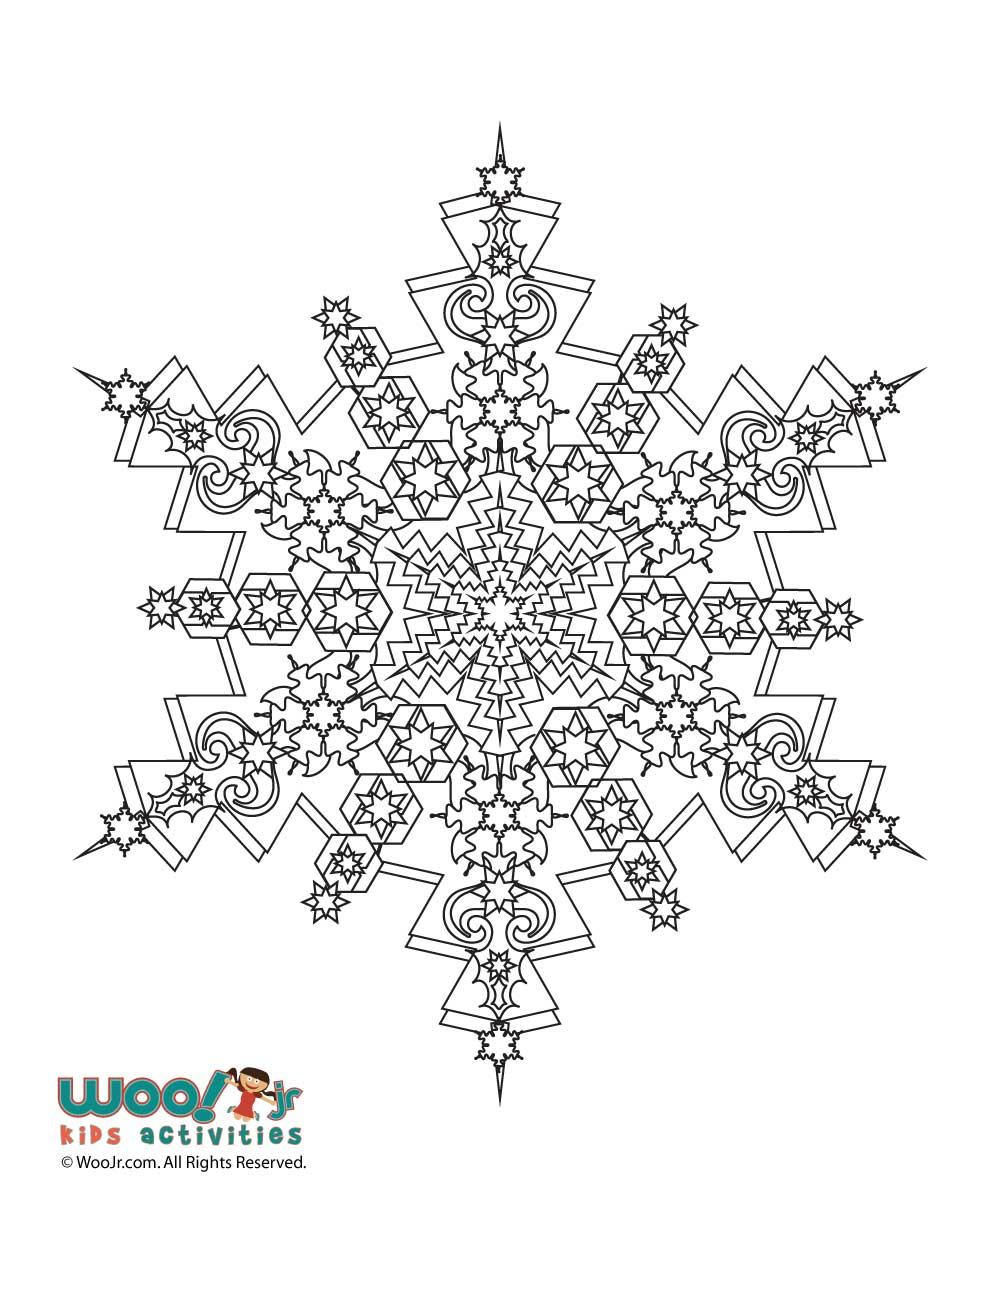 Snowflake Mandala Winter Adult Coloring Page | Woo! Jr. Kids Activities